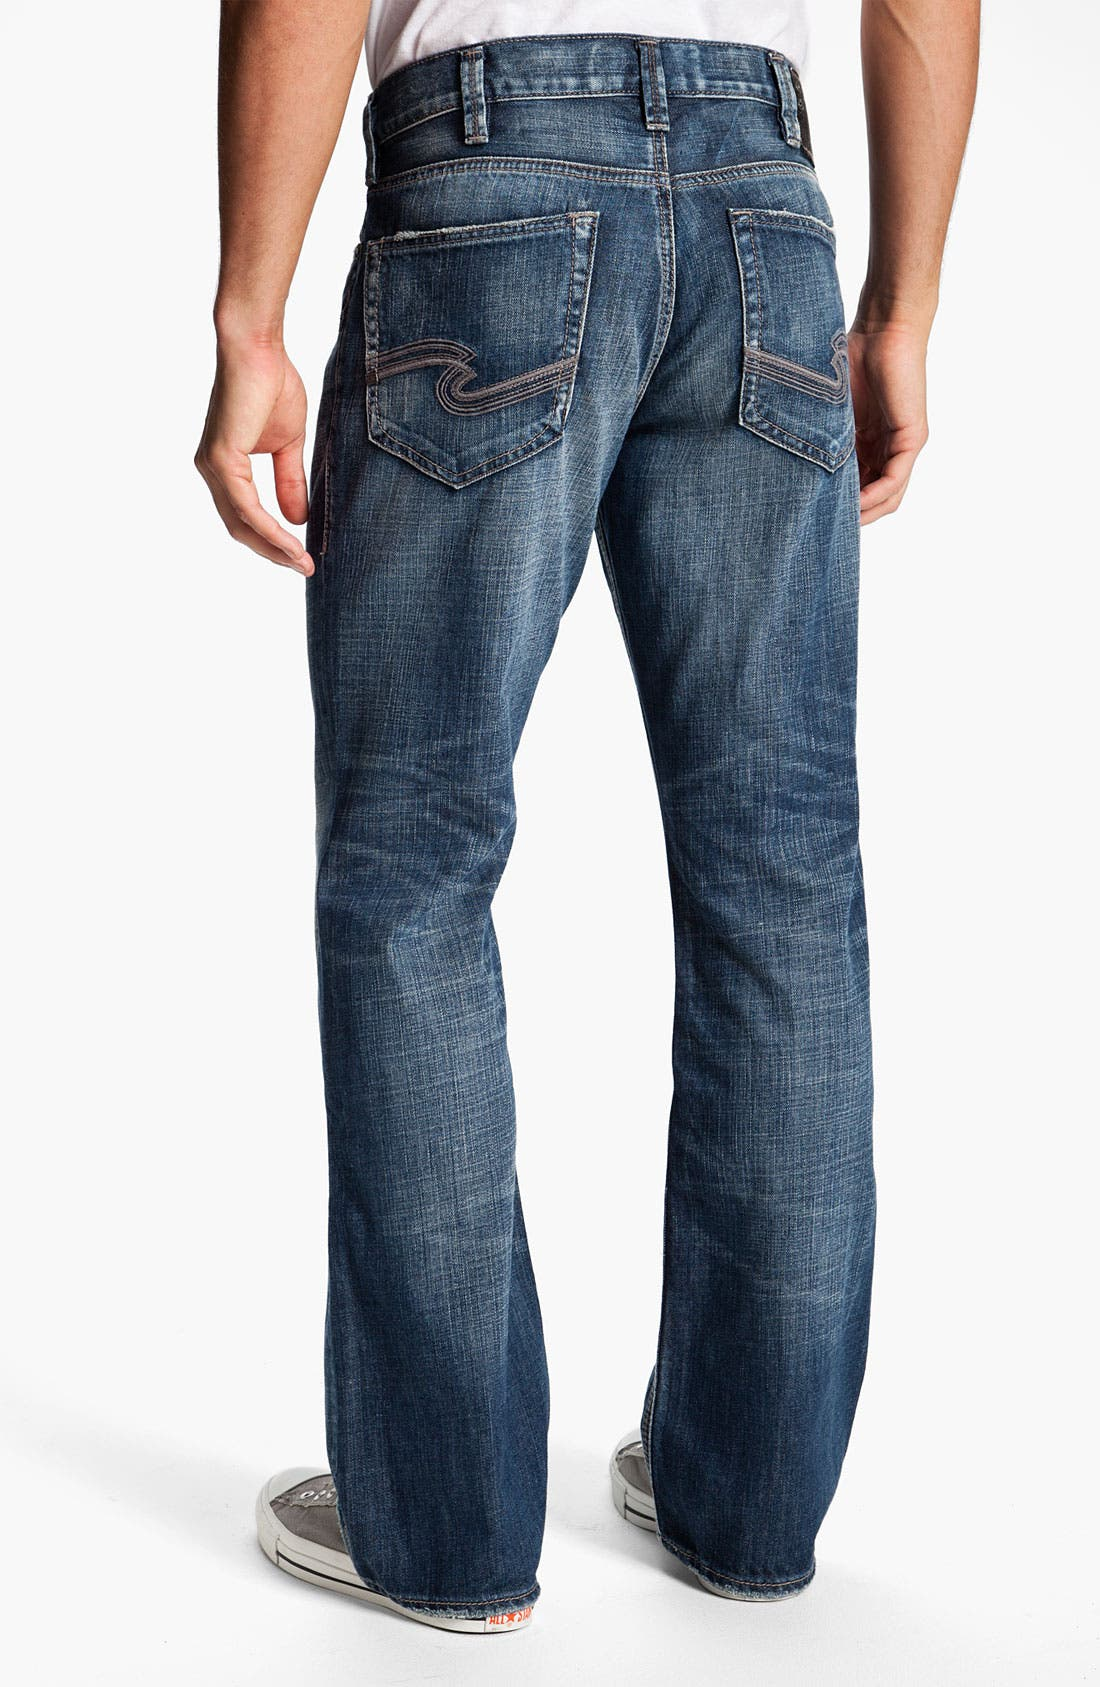 Main Image - Silver Jeans Co. 'Grayson' Relaxed Bootcut Jeans (Indigo)